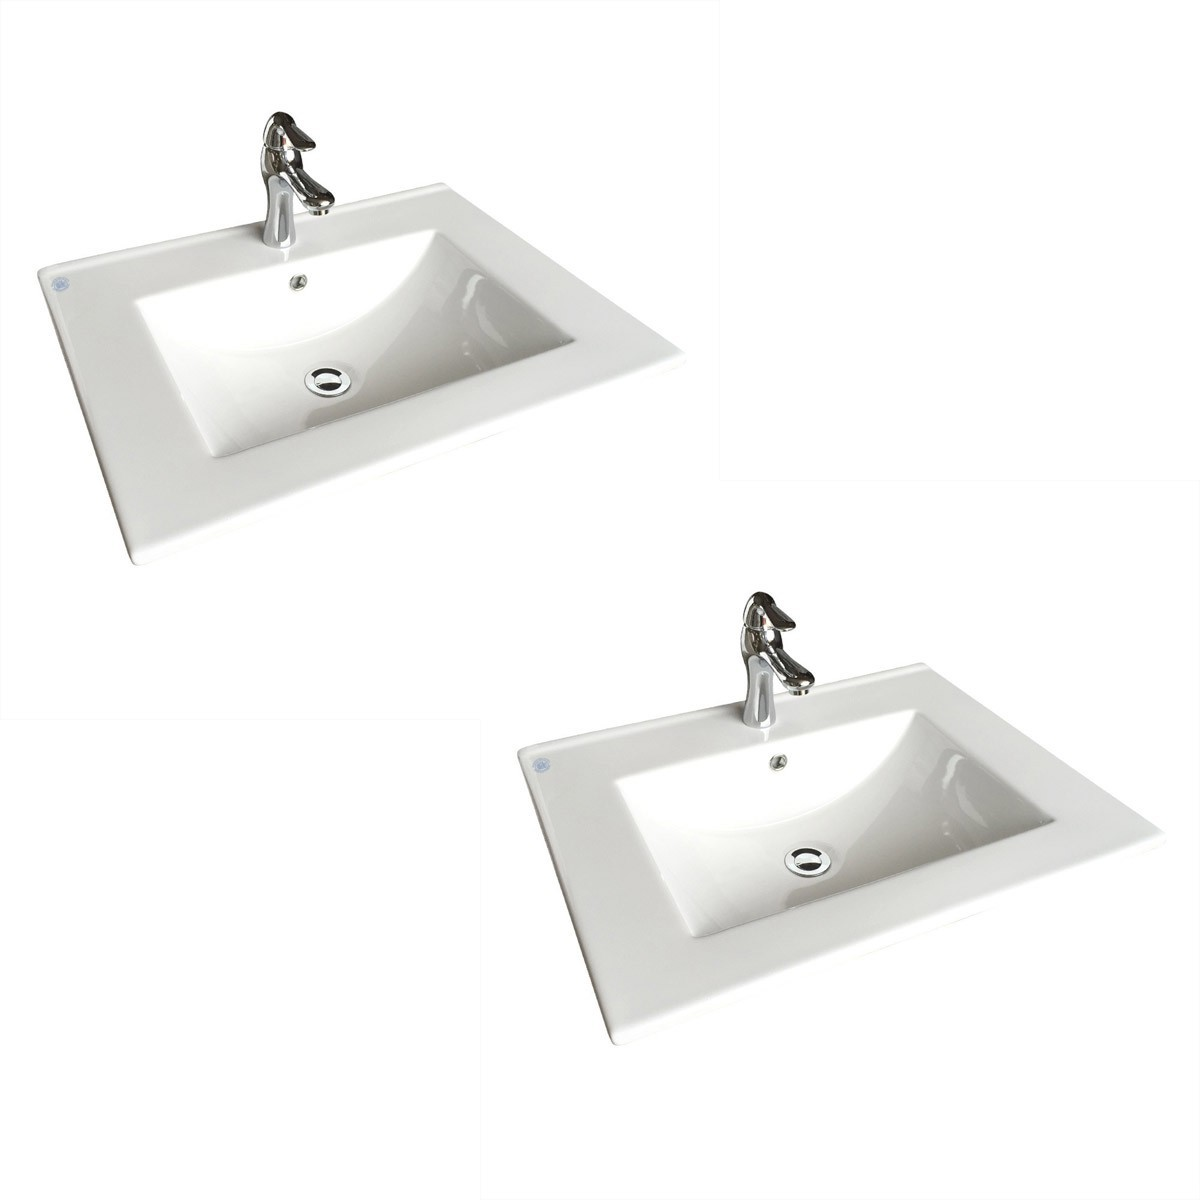 Square White Bathroom Sink with Faucet and Drain, Drop In, Self ...